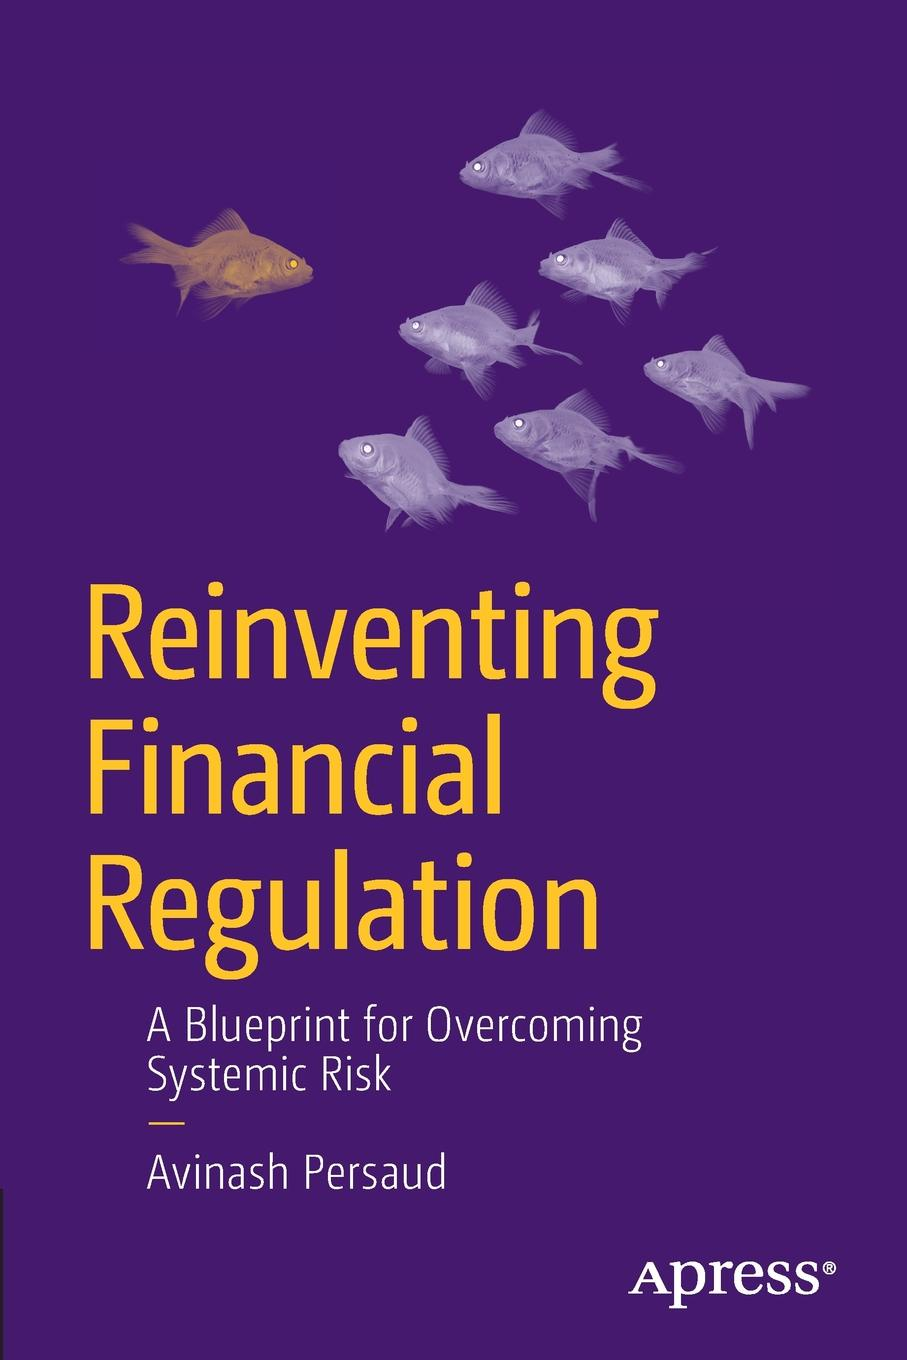 Avinash Persaud Reinventing Financial Regulation. A Blueprint for Overcoming Systemic Risk the future of financial regulation